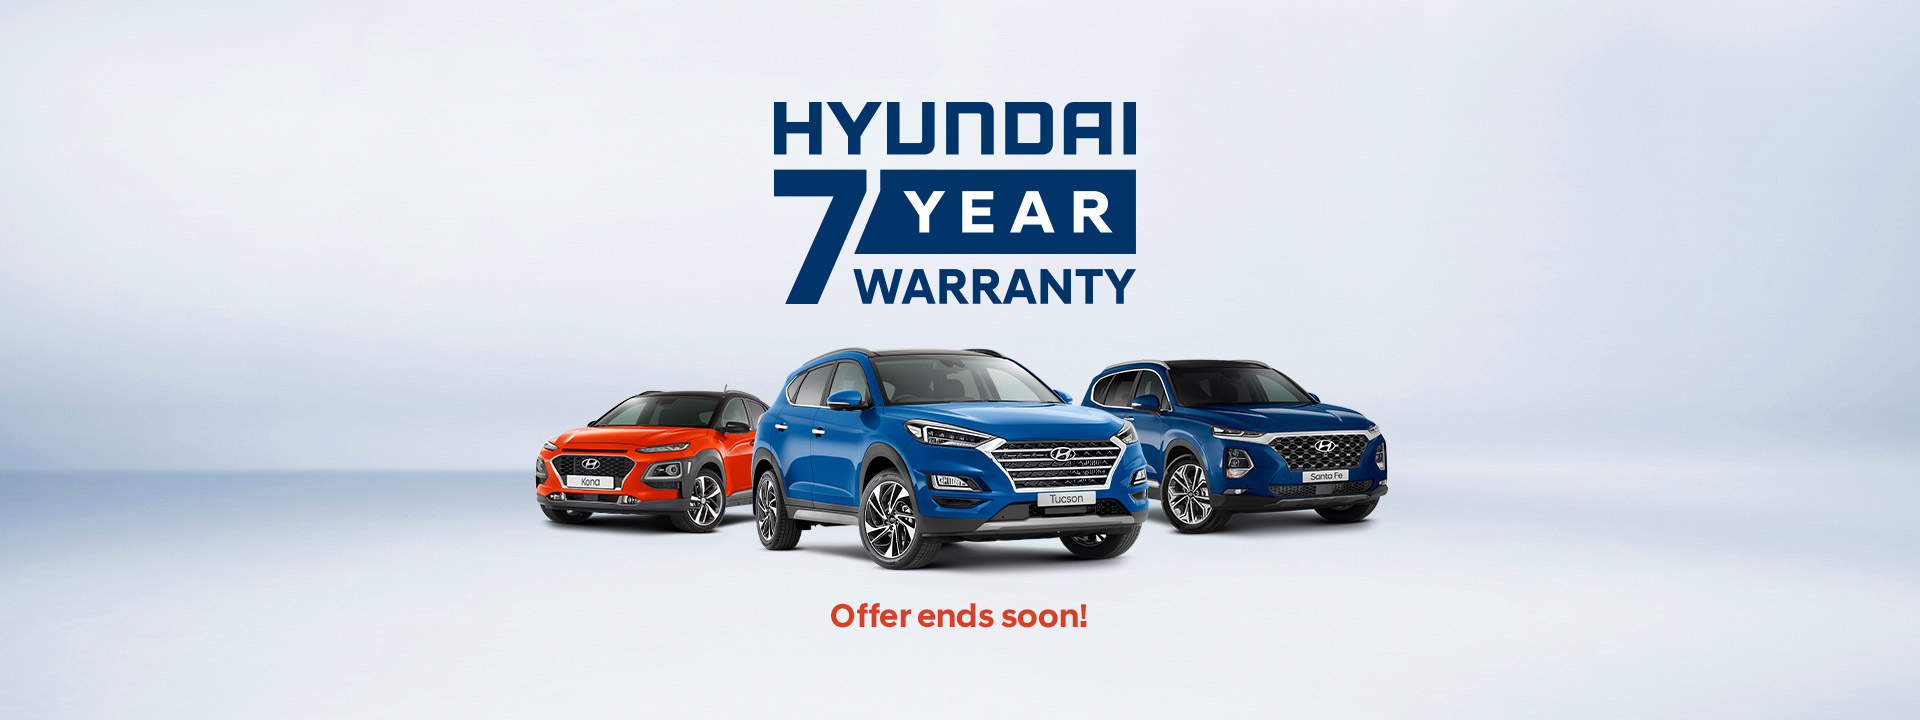 Hyundai Dealer Offers